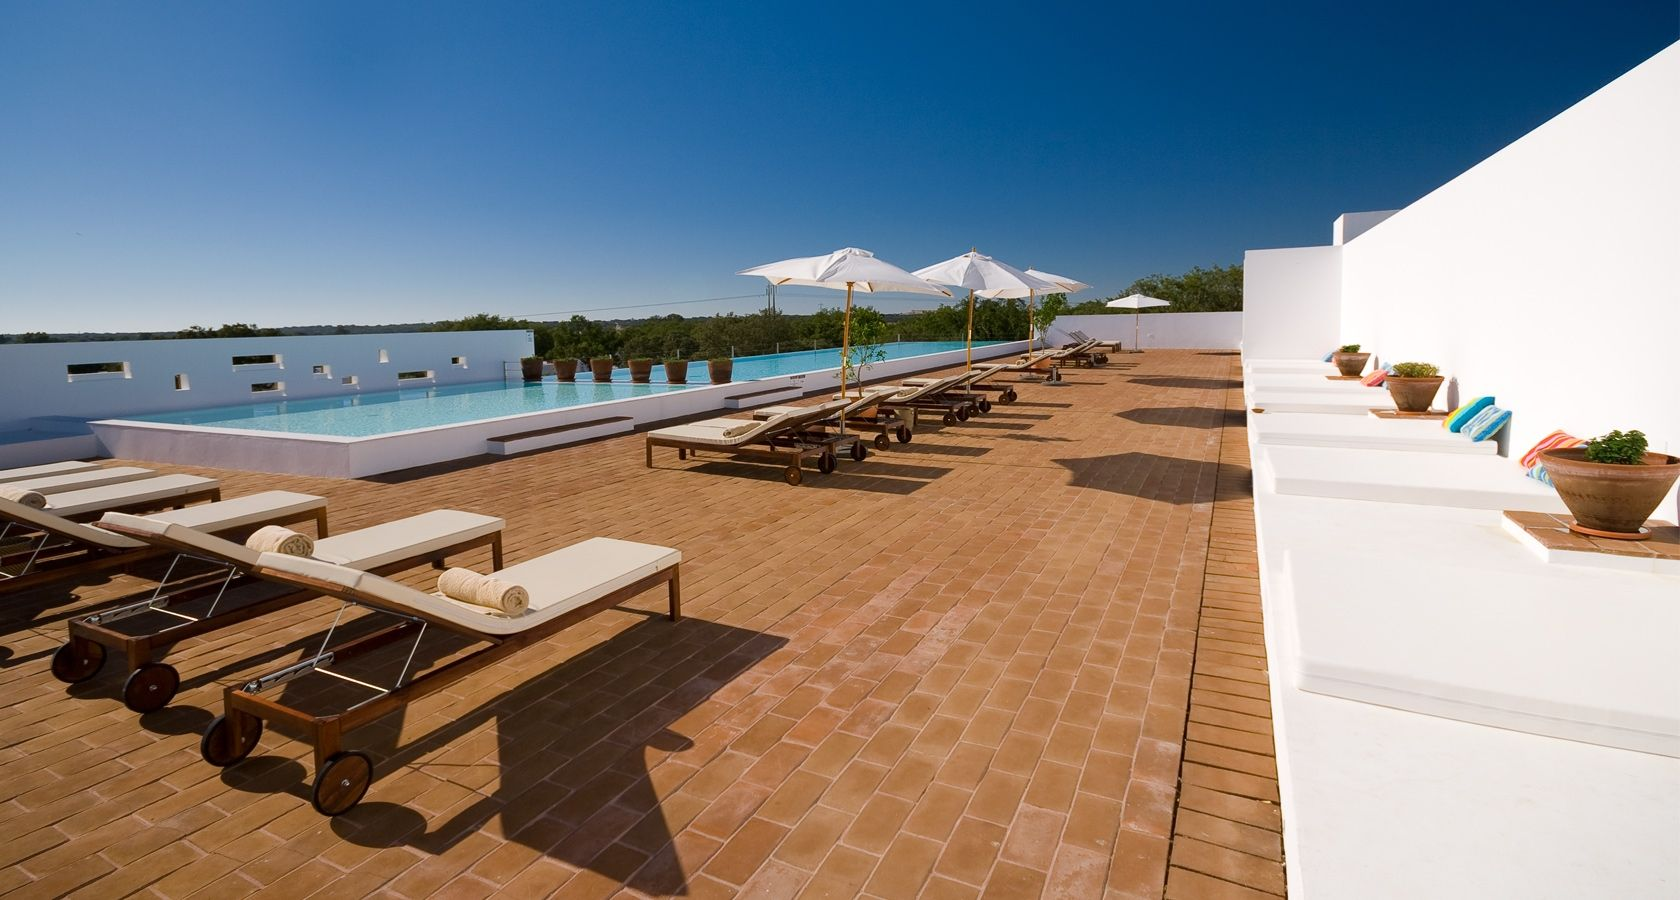 New concept of Hotel in Alentejo plain, Evora, Ecorkhotel & Spa Suites Ecork Hotel  Ecork is a Hotel in Évora, Portugal, with aspa, health club, gym, restaurant, bar, conference rooms, outdoor pool and 56 bungalows.